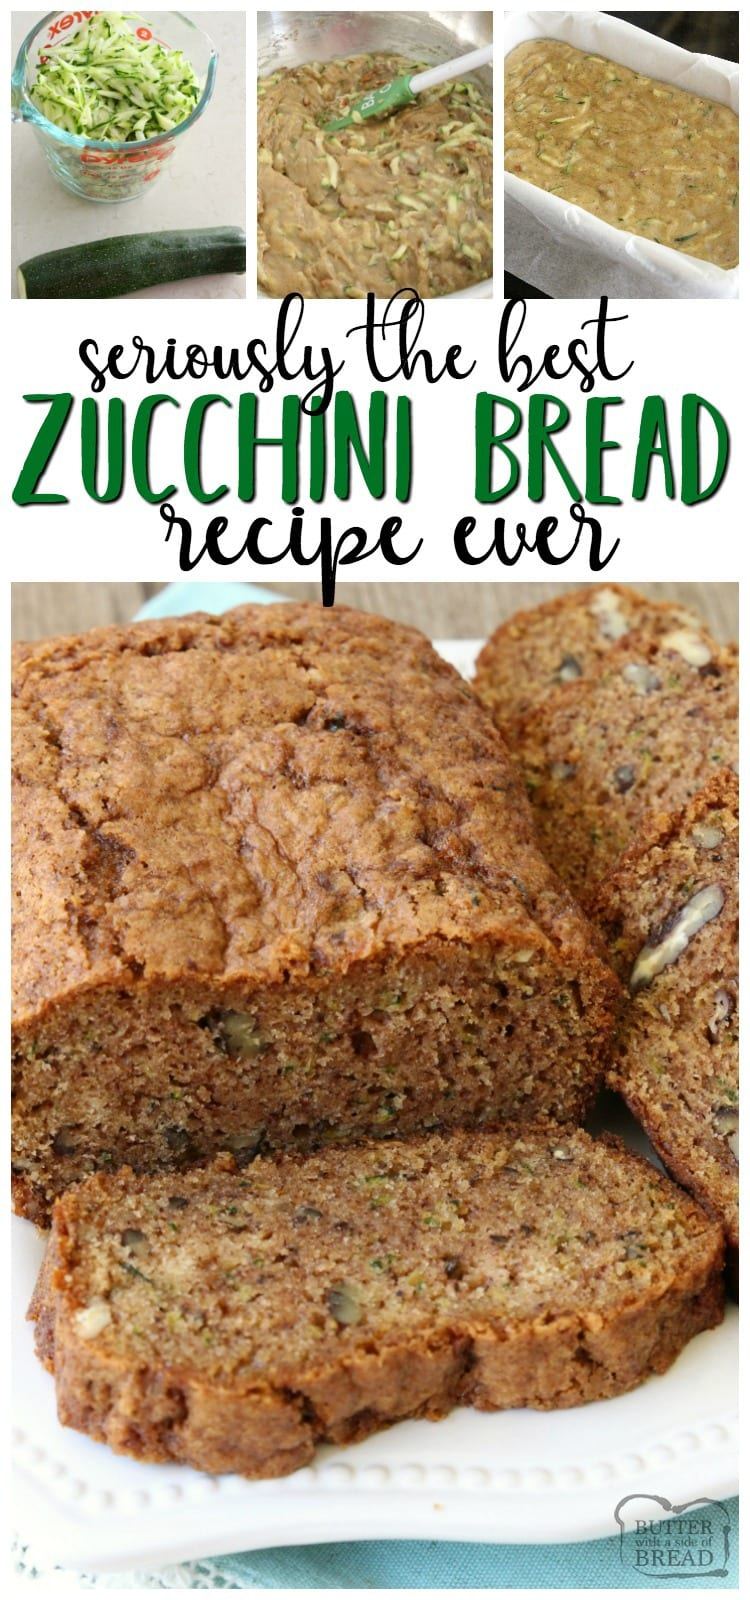 Zucchini Bread that truly is the best ever! Easy to make & you'll love the blend of spices used. Popular for a reason, it's the perfect zucchini bread recipe! Butter With A Side of Bread